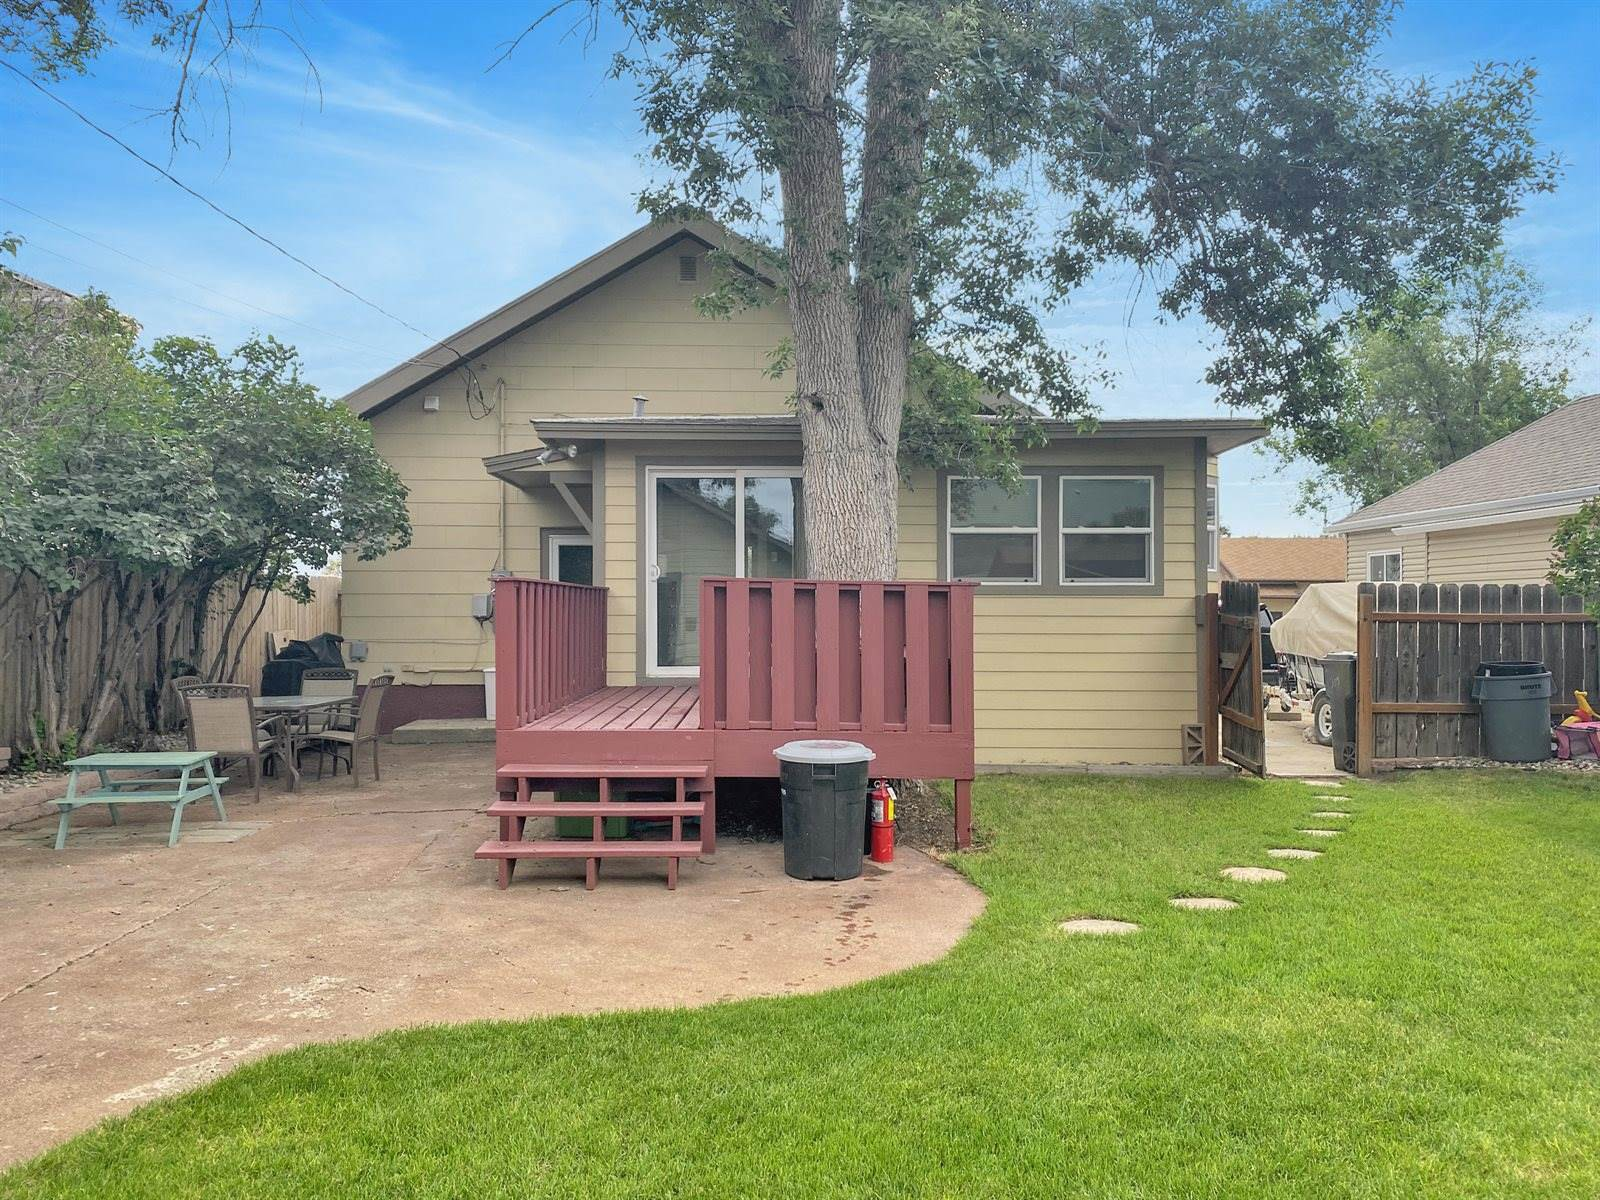 709 1st Ave West, Williston, ND 58801